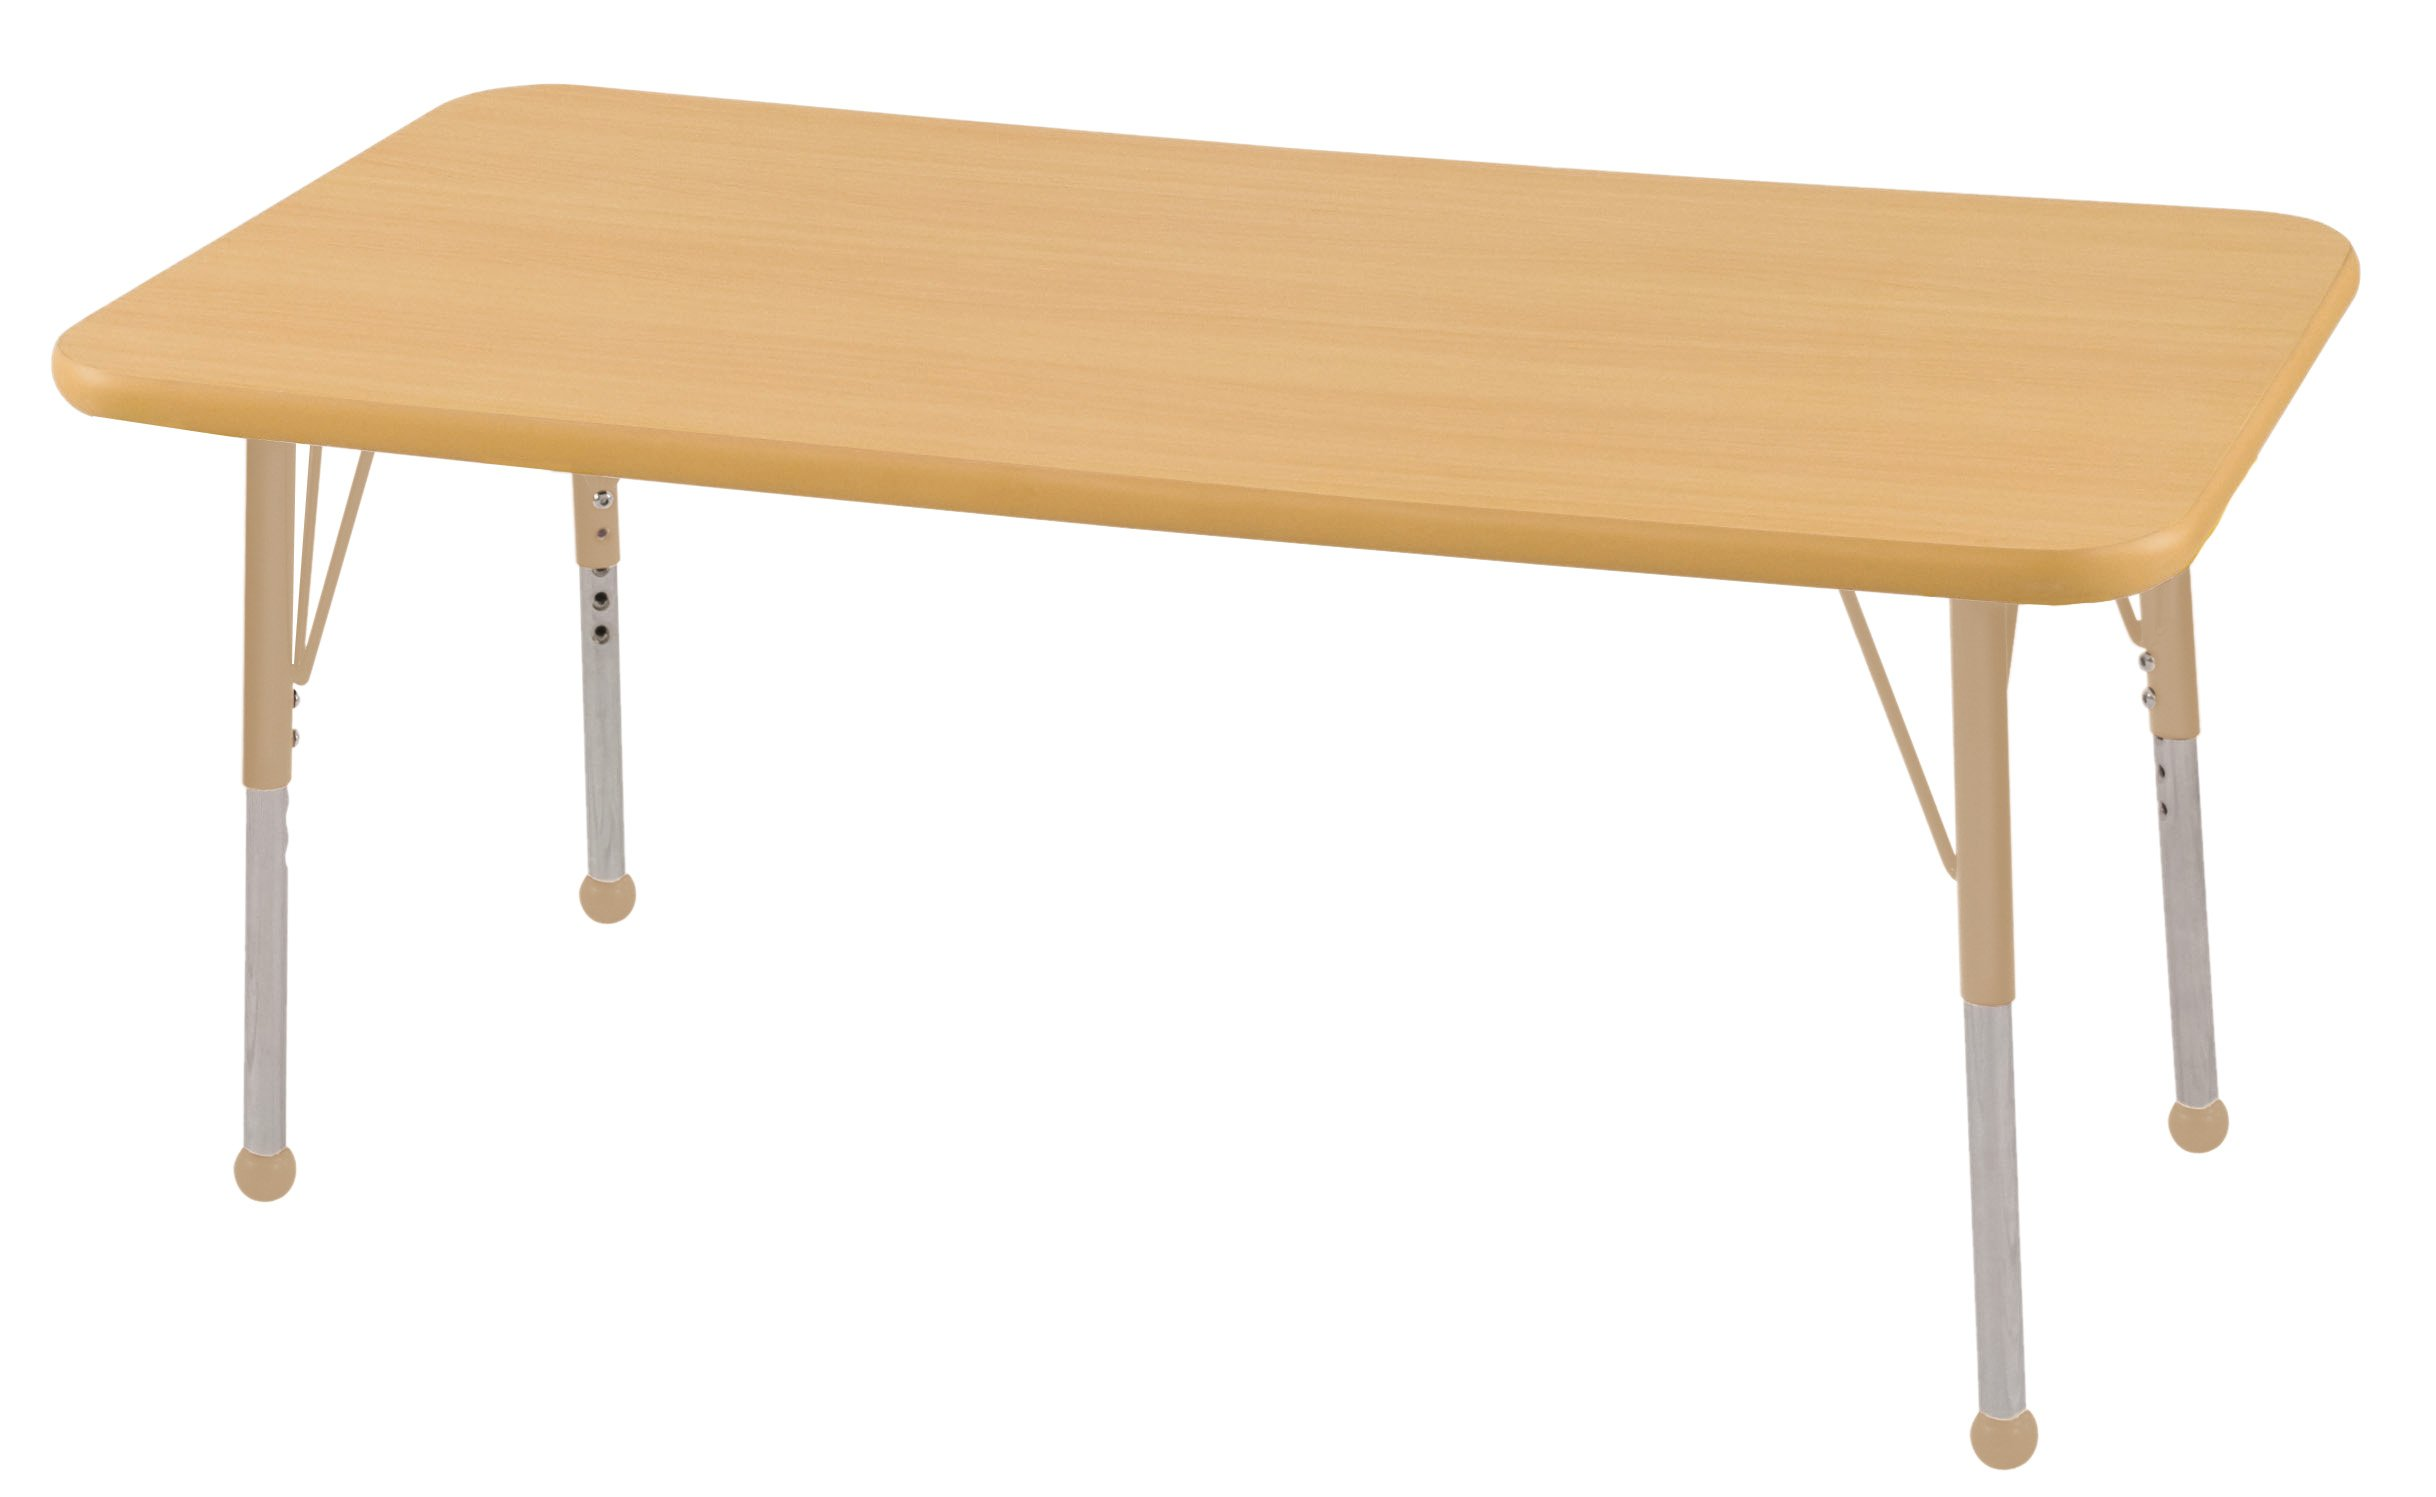 ECR4Kids Mesa T-Mold 30'' x 48'' Rectangular School Activity Table, Standard Legs w/ Ball Glides, Adjustable Height 19-30 inch (Maple/Sand)